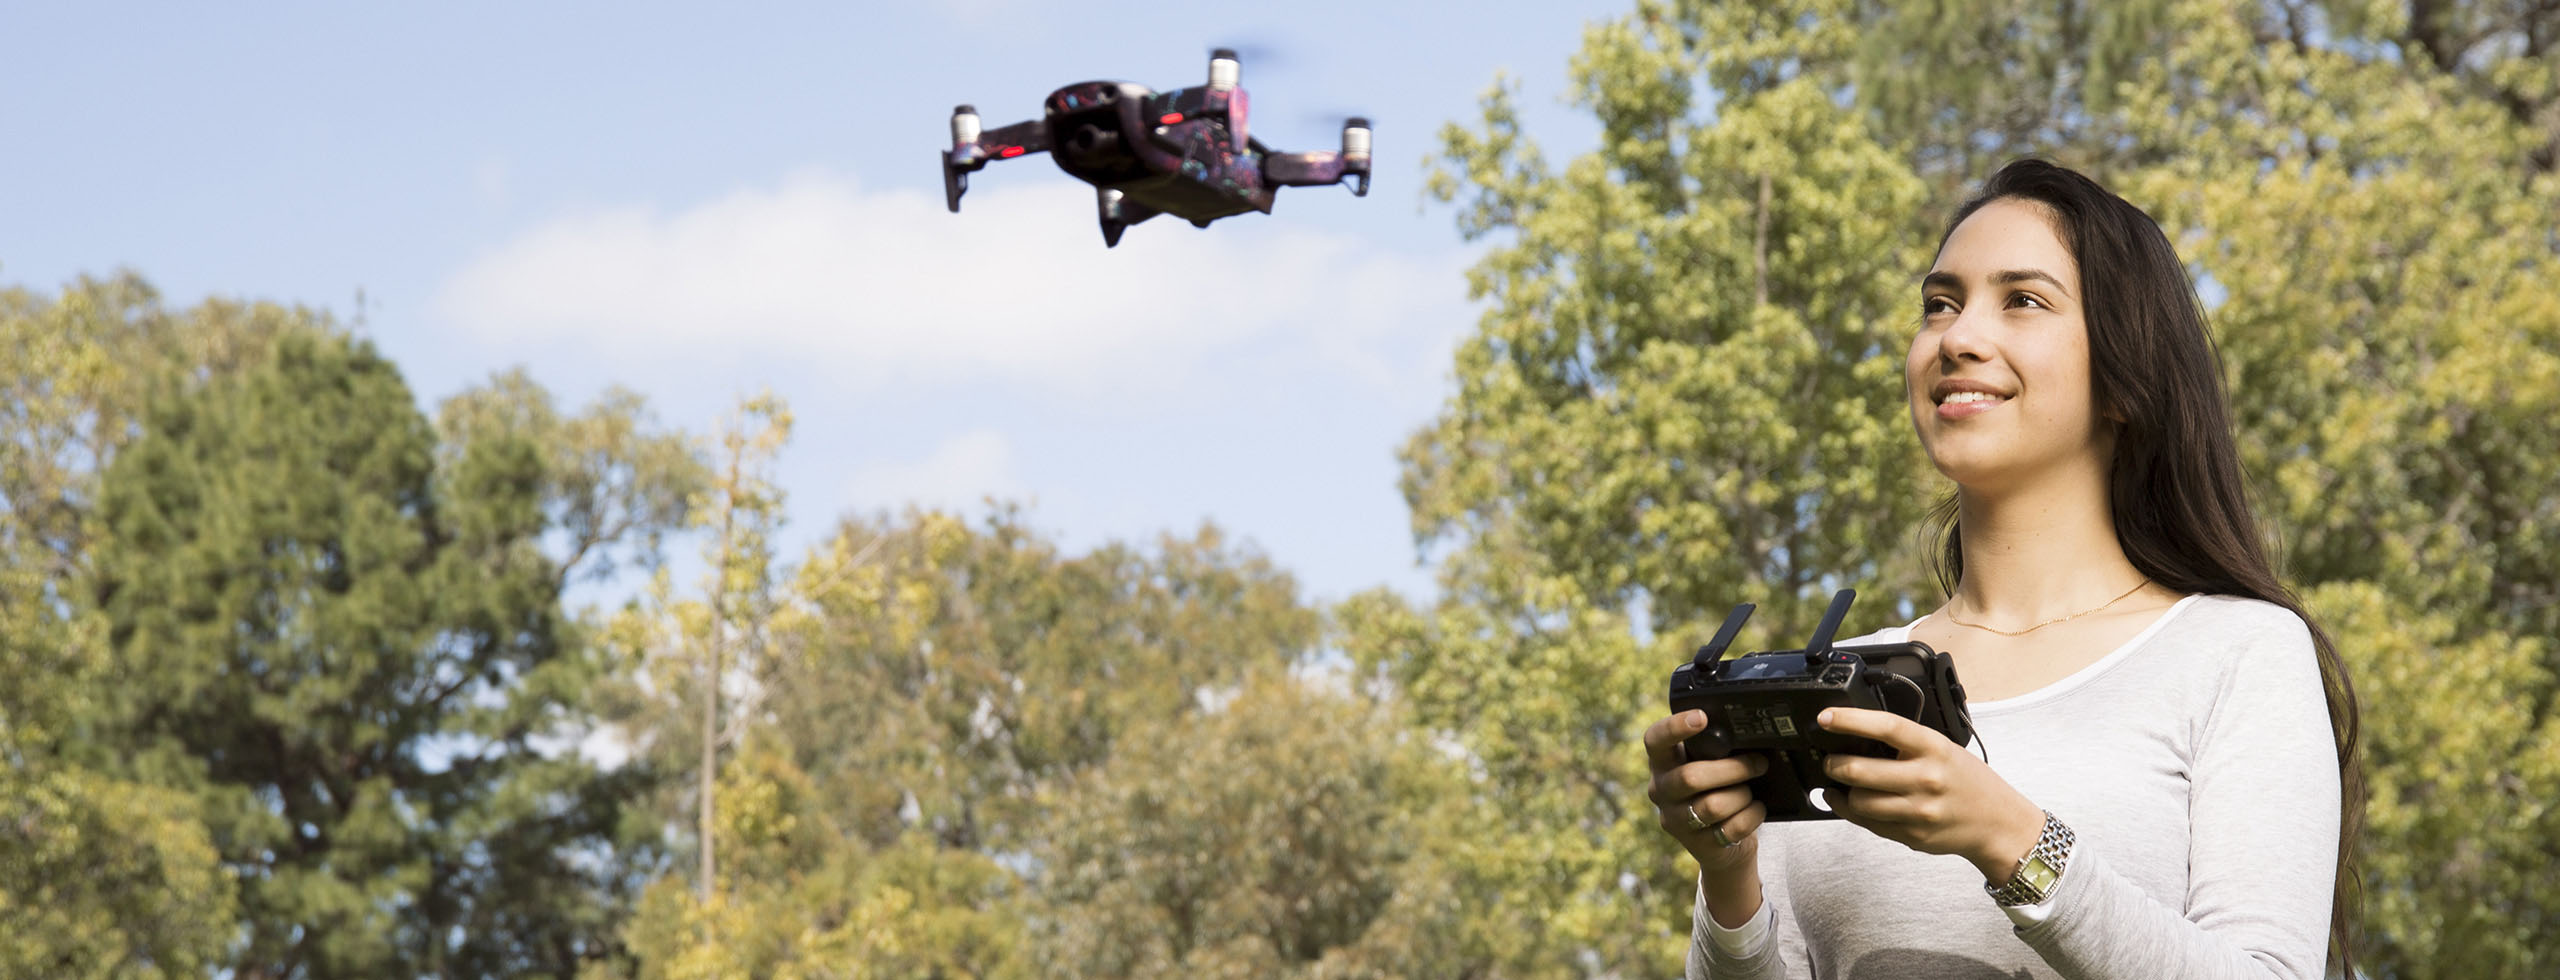 Girl driving a drone